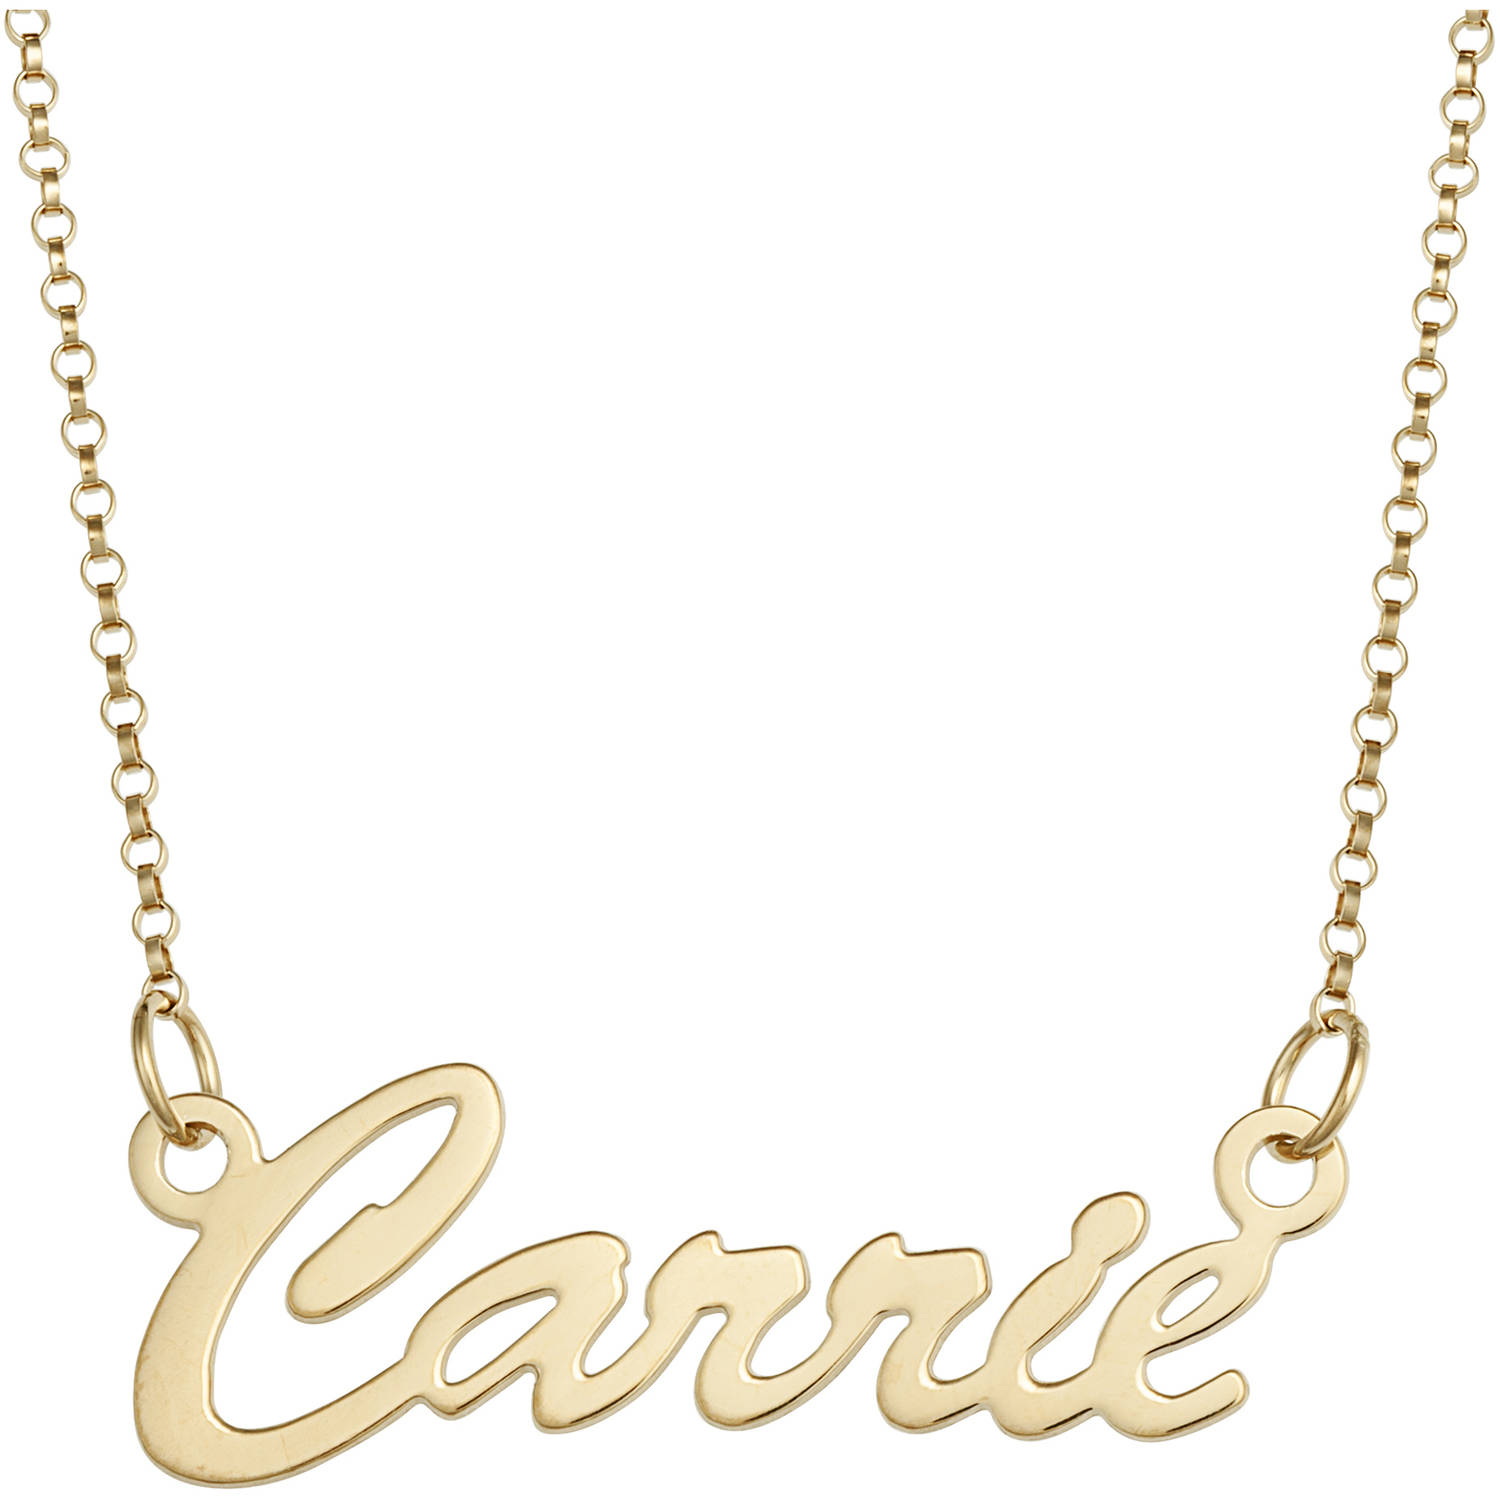 Personalized 14K Gold over Sterling Silver or Sterling Silver Hollywood Script Name Necklace, 18""